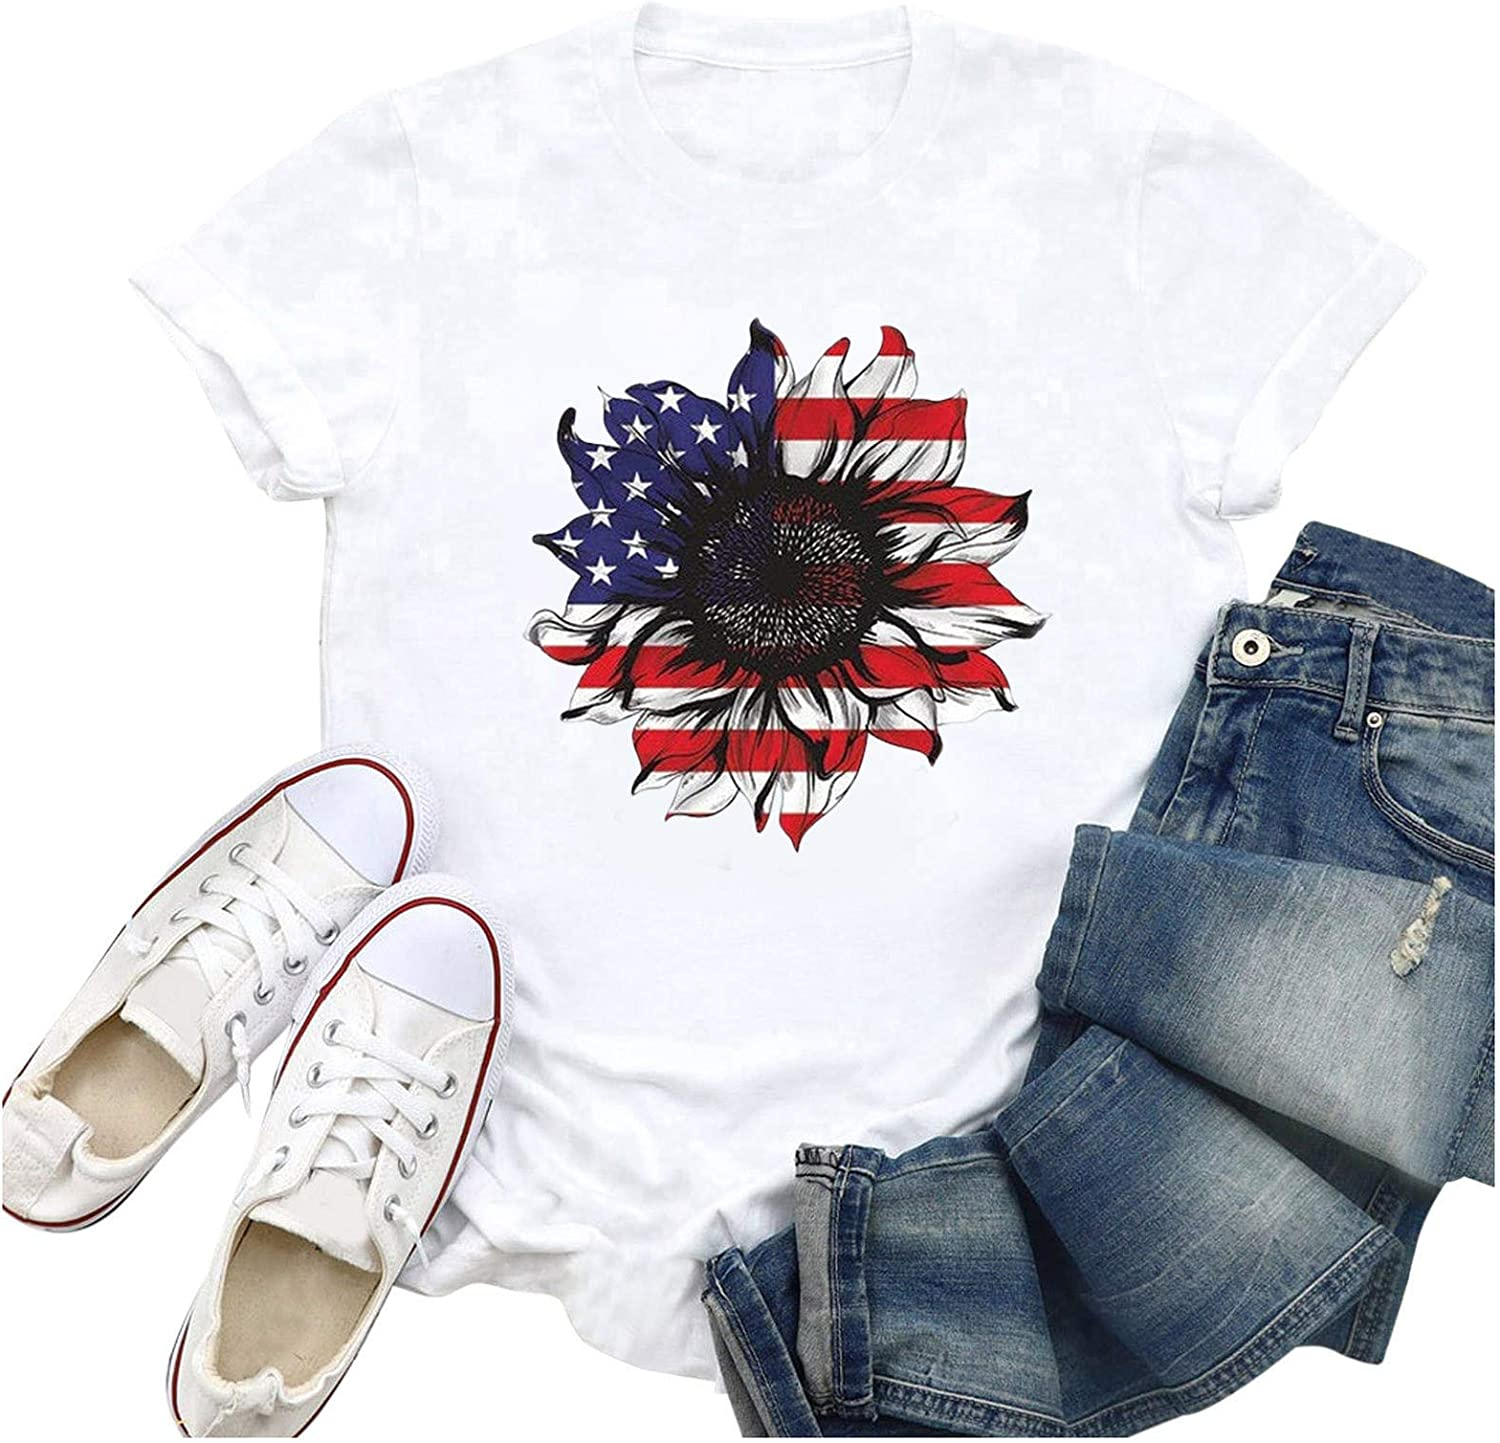 Aukbays Womens Summer Tops 4th of July Sunflower US Flag Graphic Printed T-Shirts Short Sleeve Causal Shirts Tees Blouse